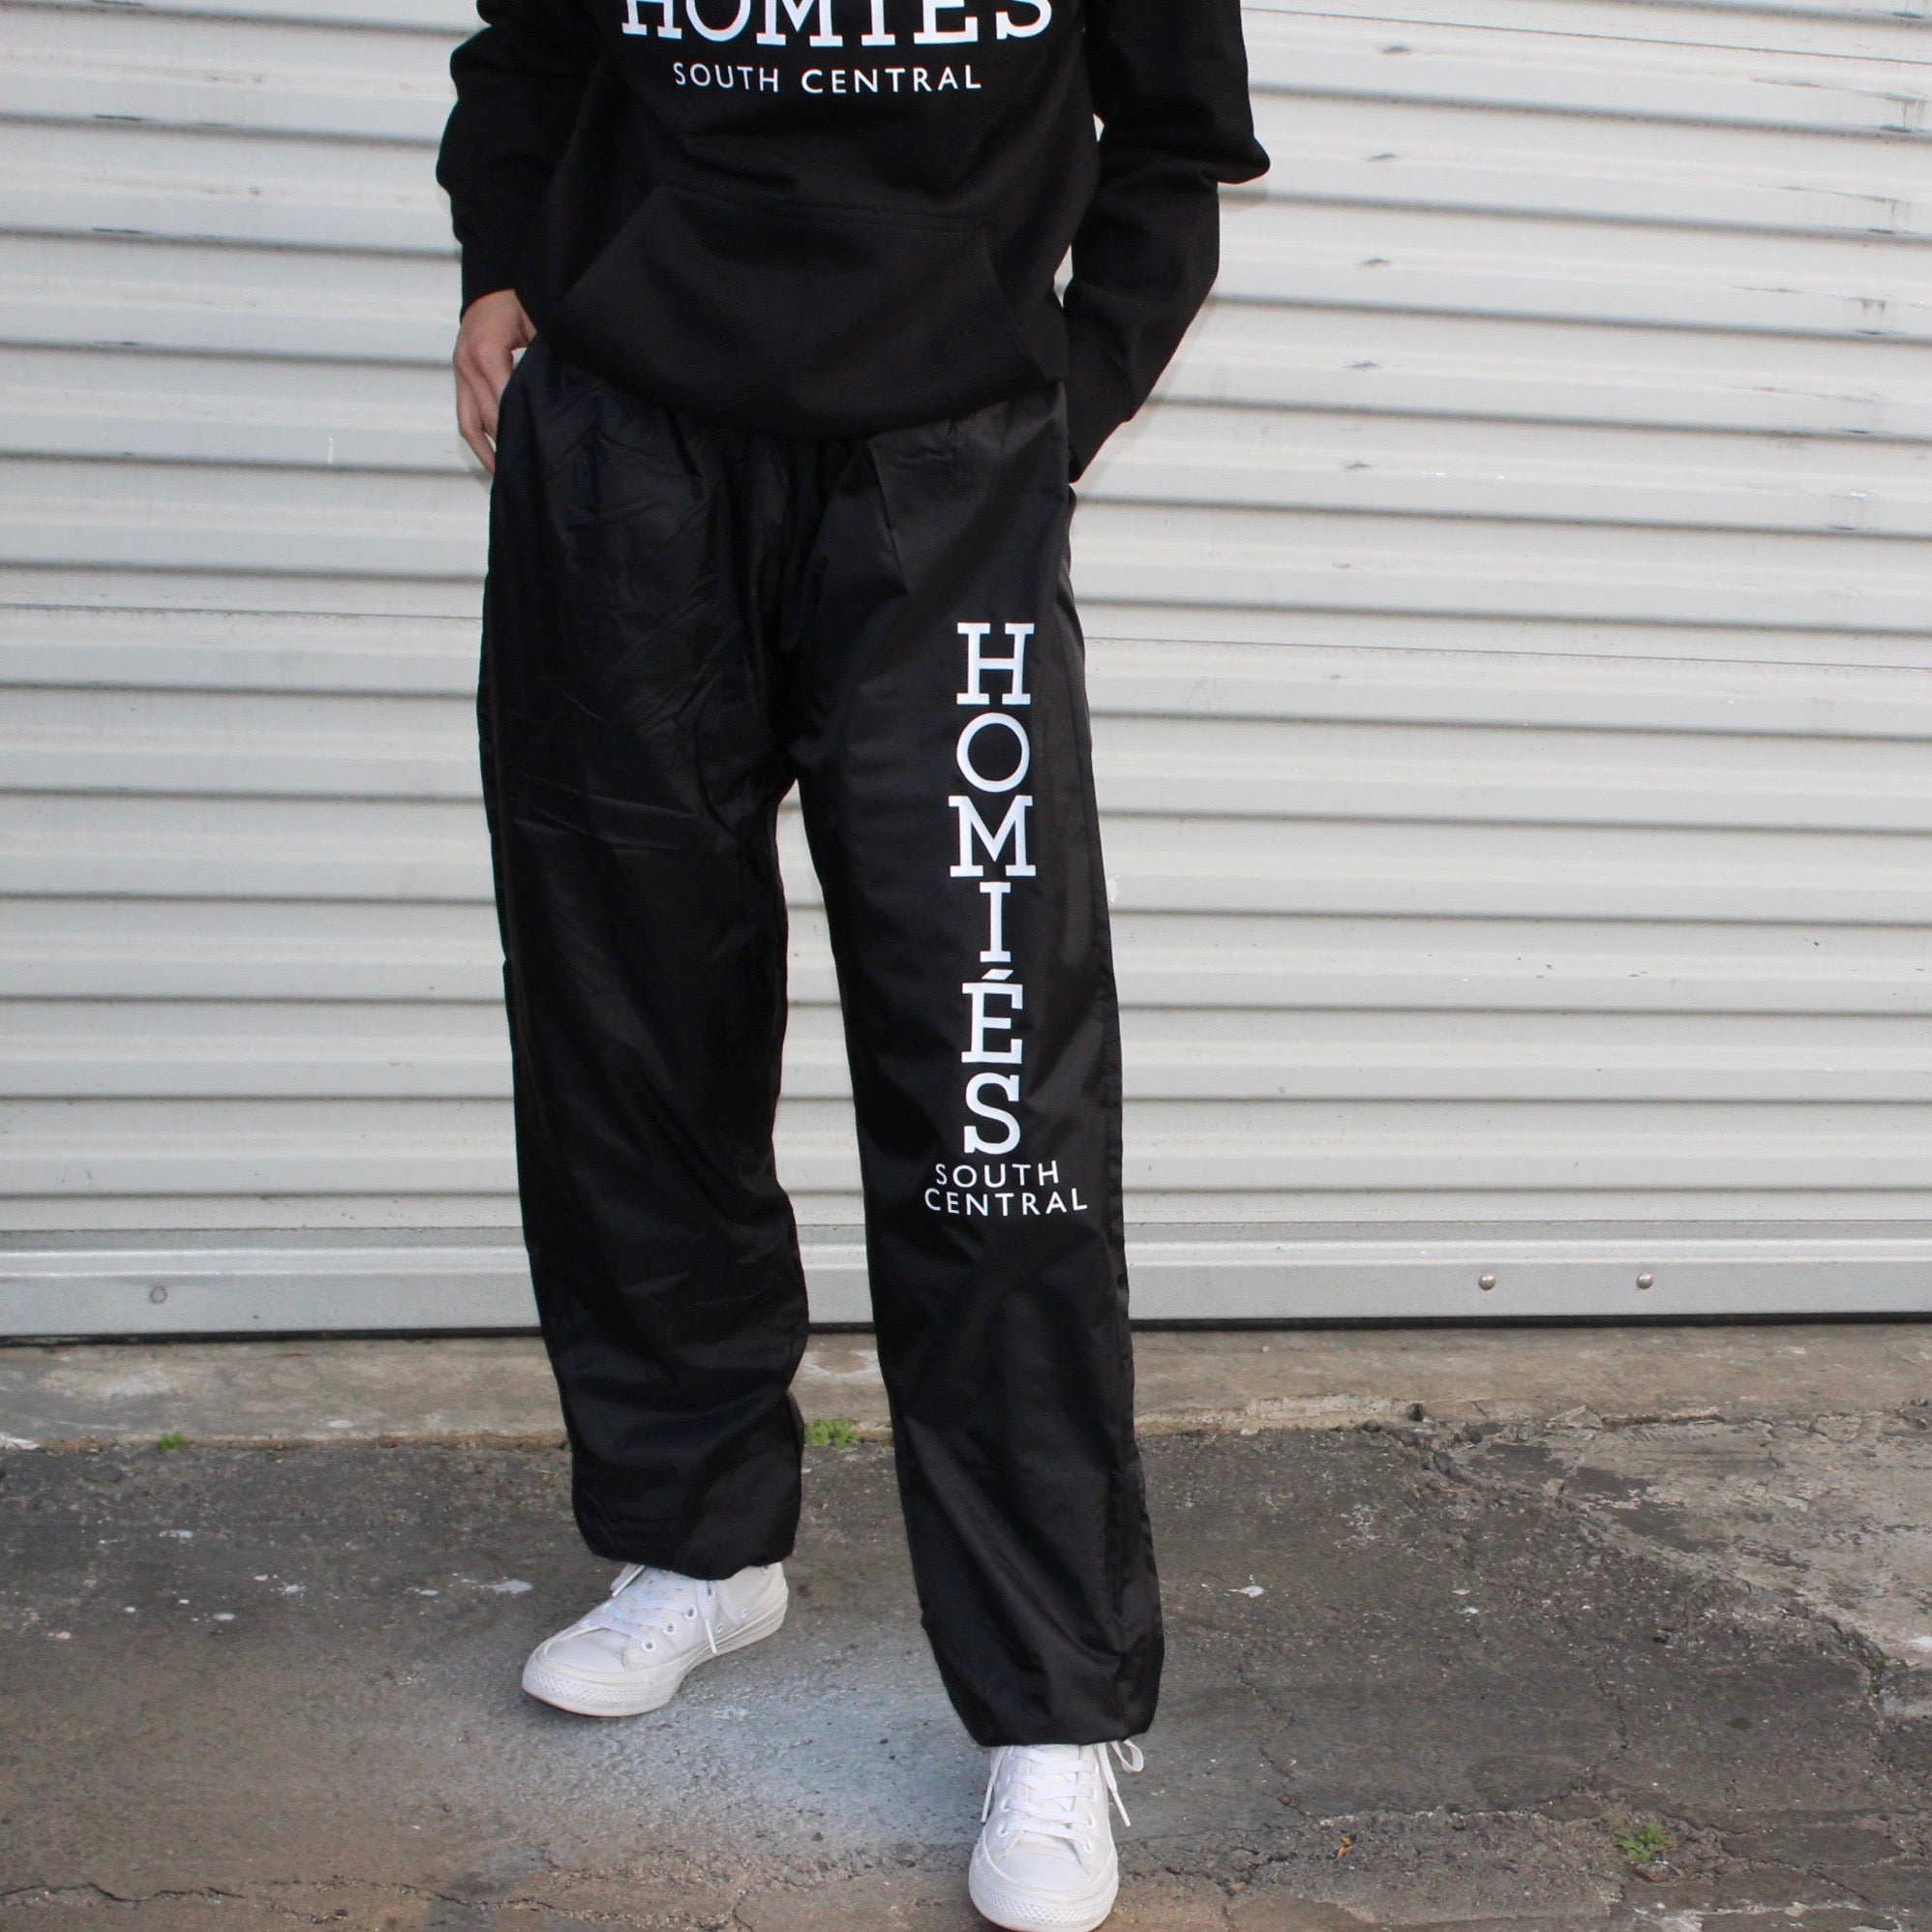 HOMIES NYLON SWEATPANTS